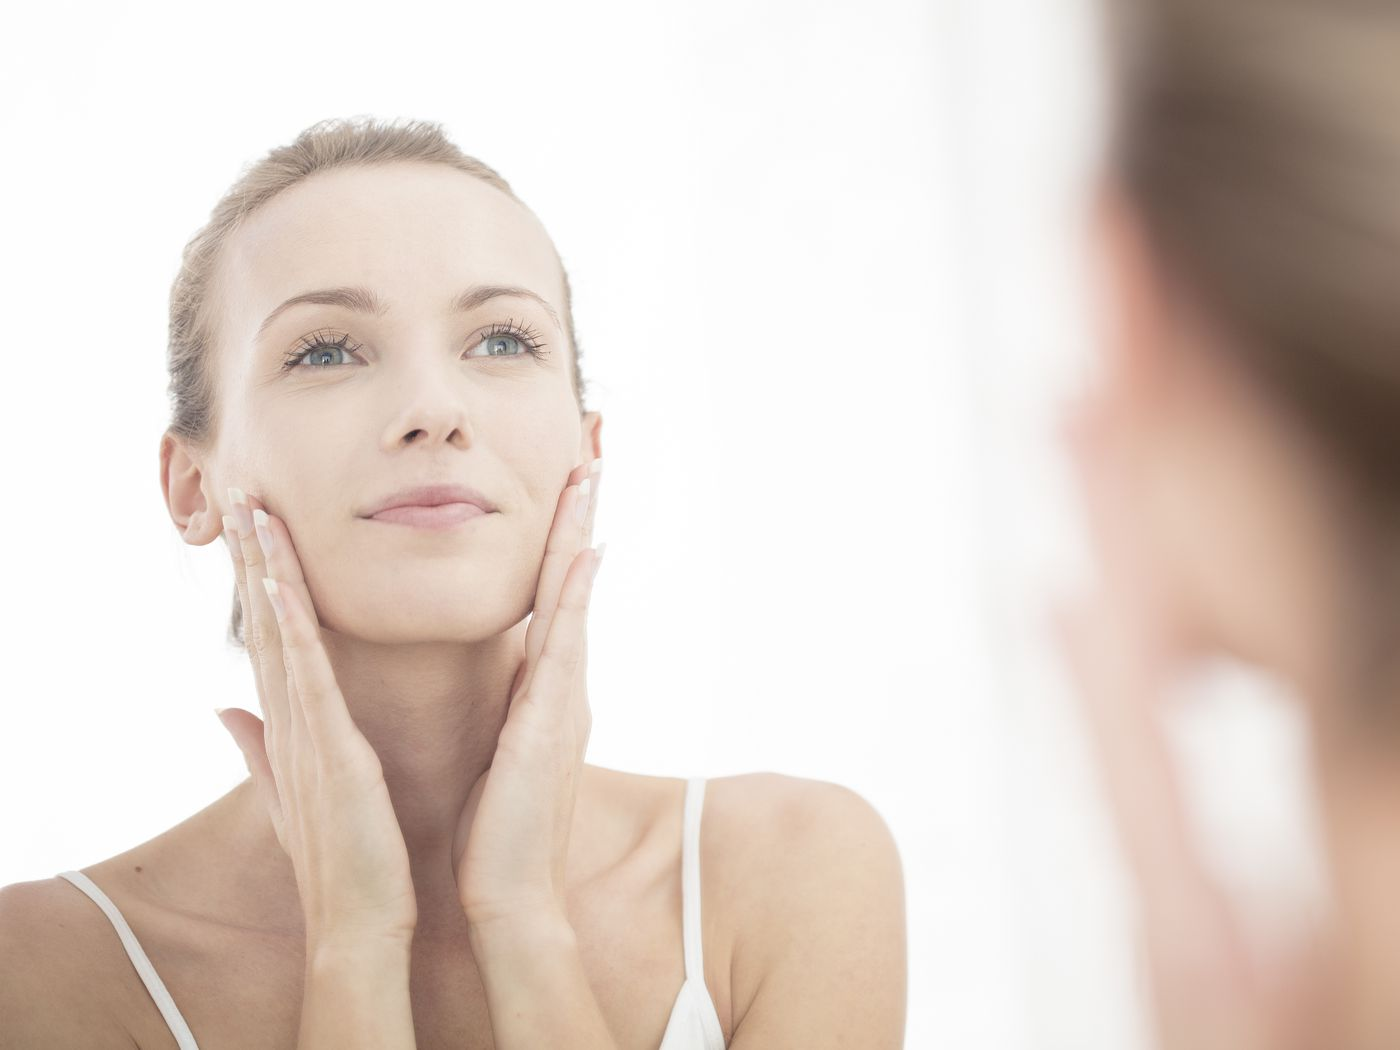 The skin care wars, explained - Vox